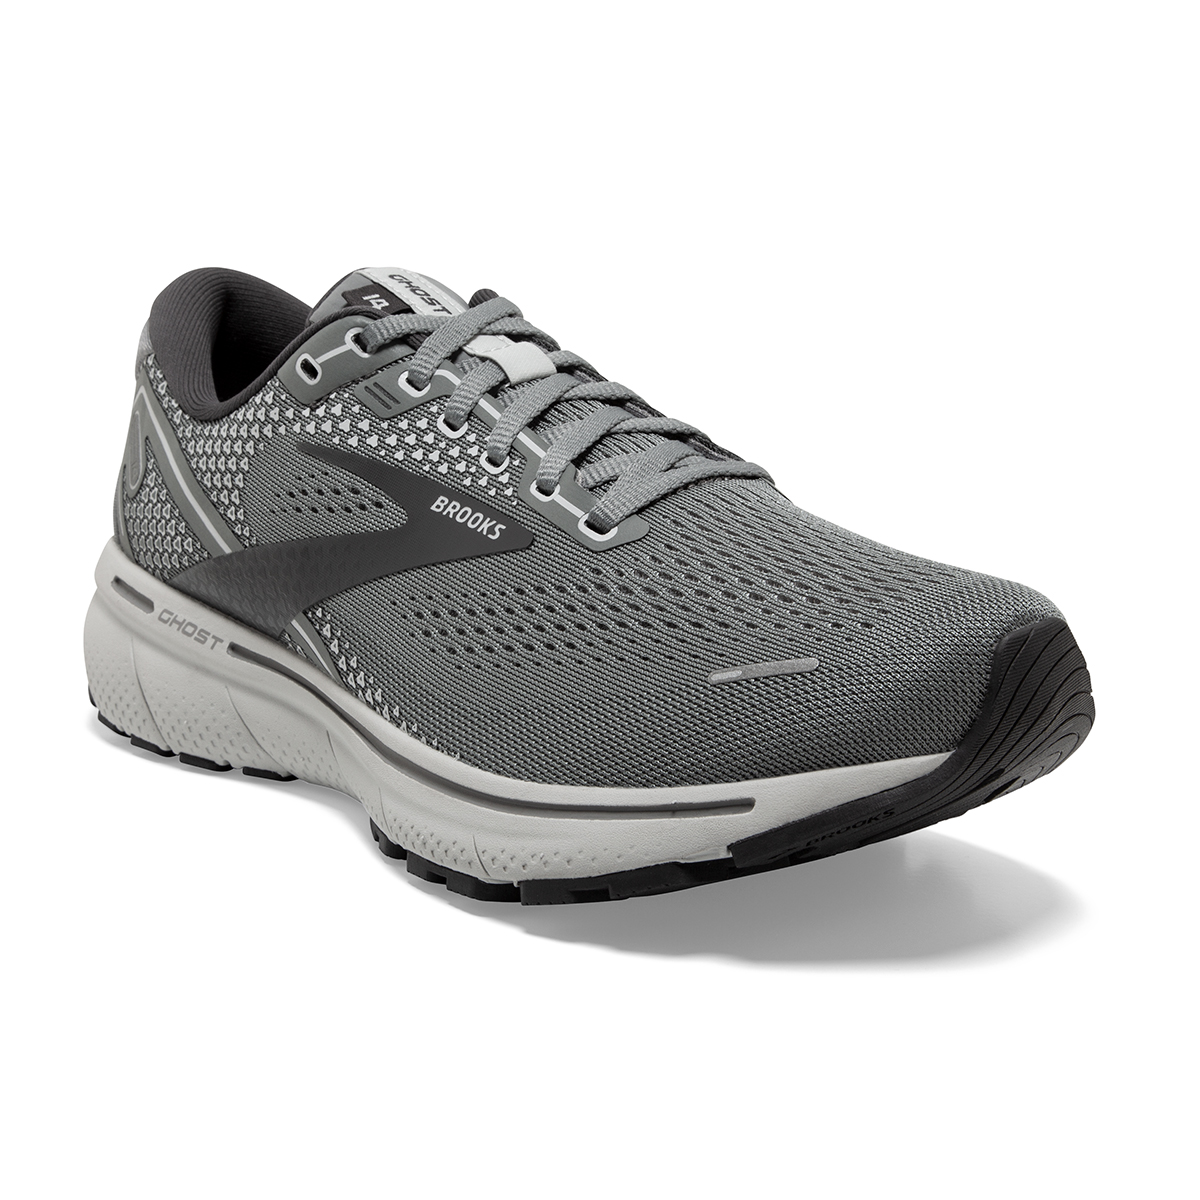 Men's Brooks Ghost 14 Running Shoe - Color: Grey/Alloy/Oyster - Size: 8 - Width: Extra Wide, Grey/Alloy/Oyster, large, image 5